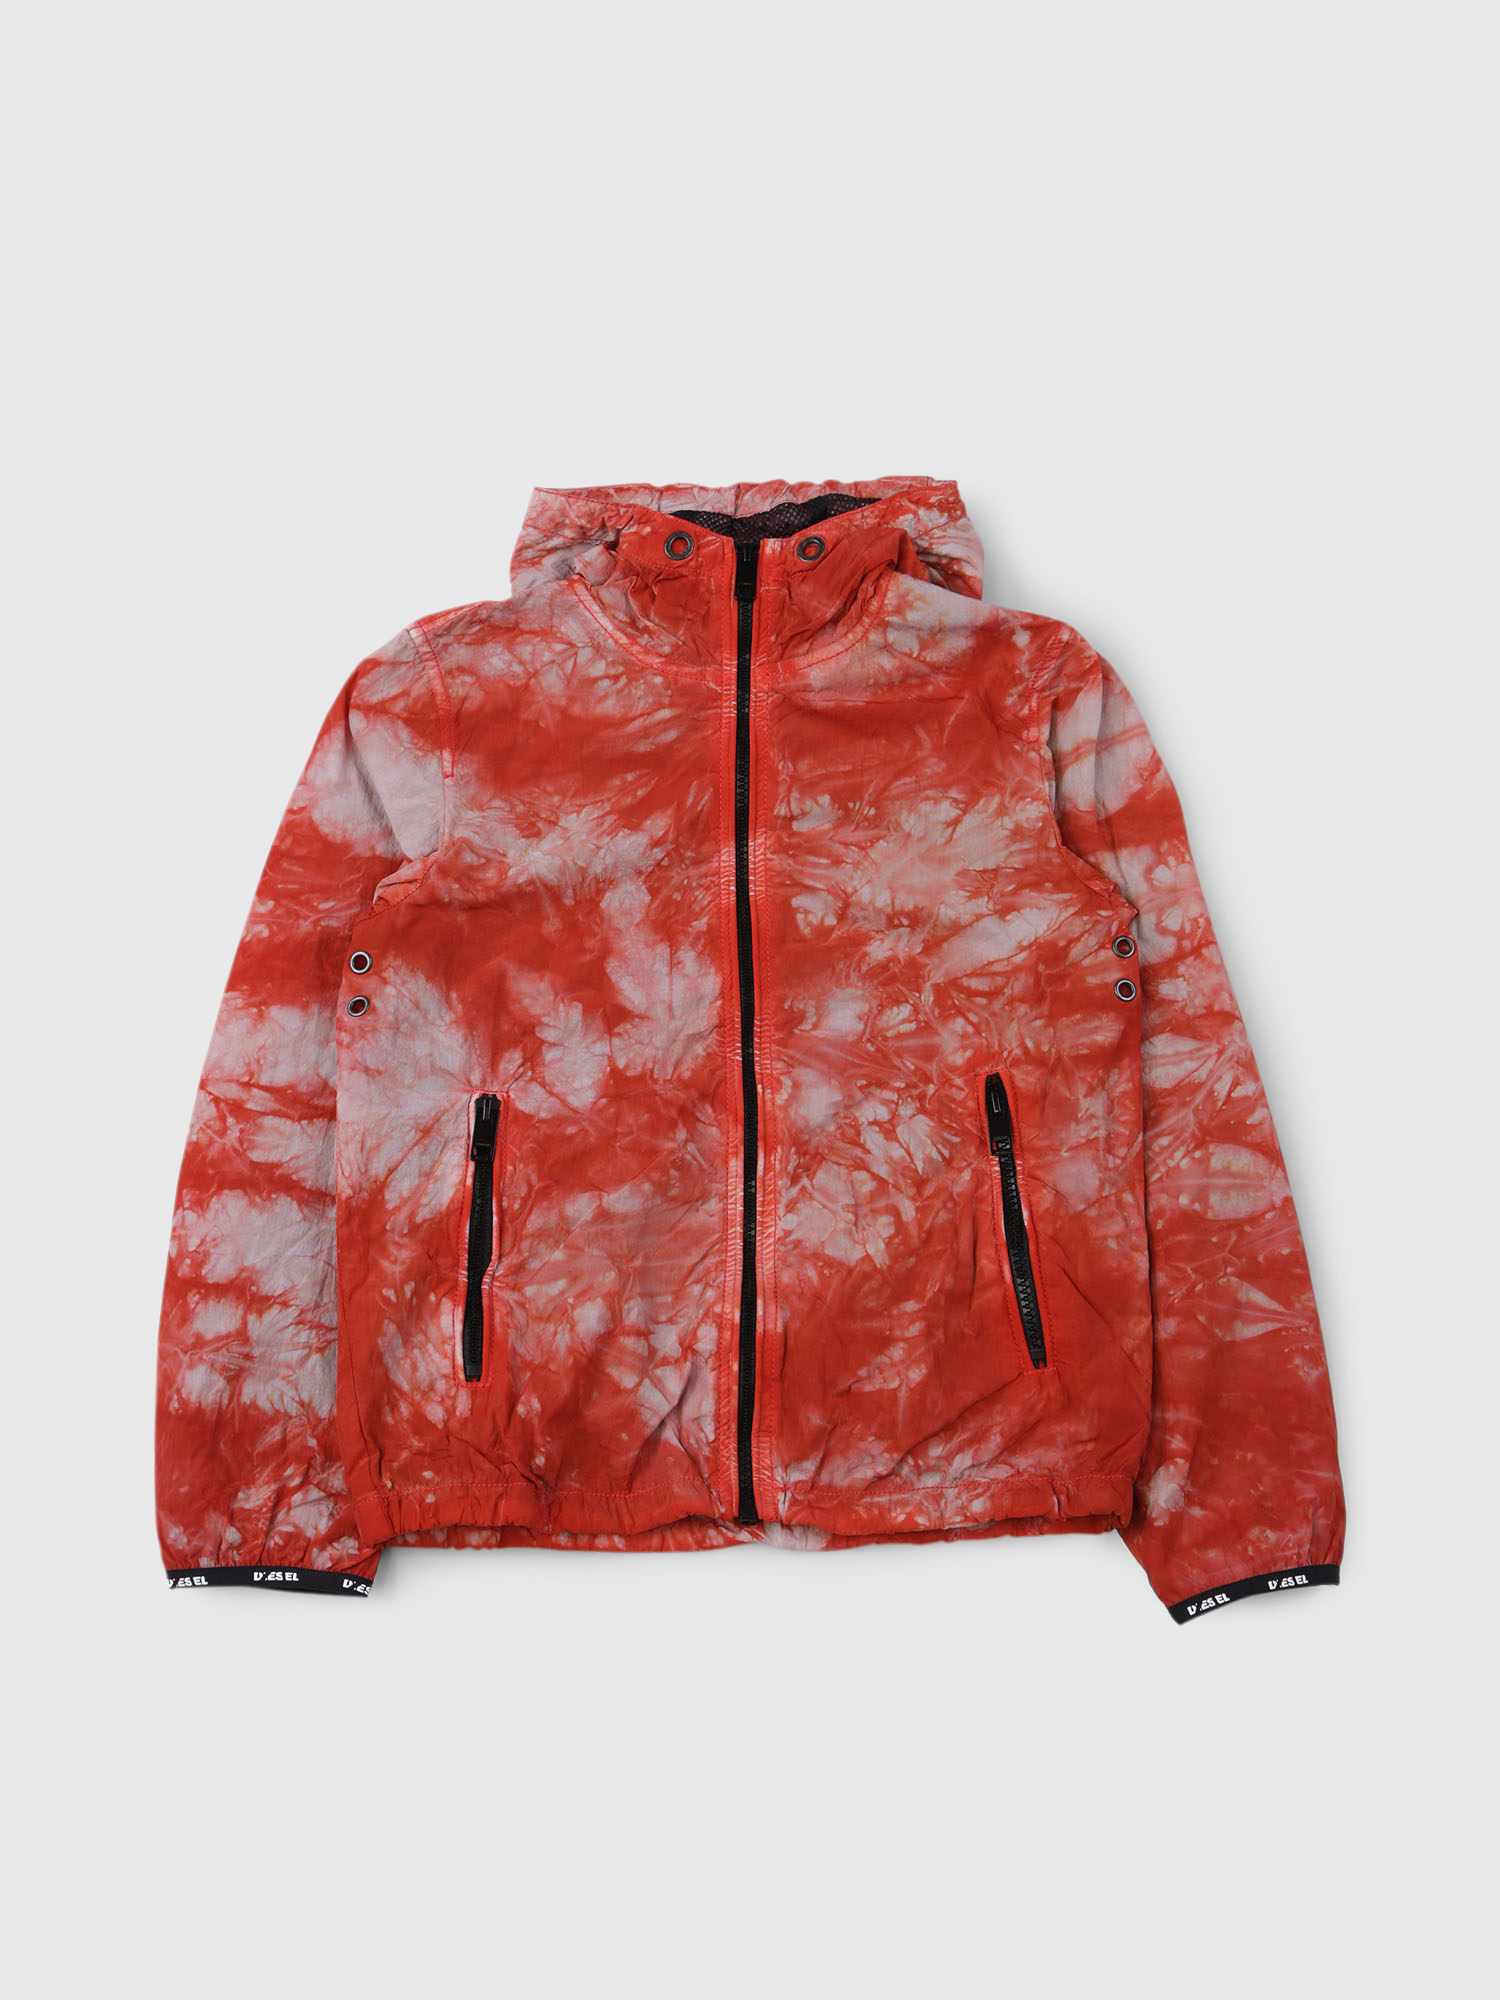 Diesel Jackets 0DASJ - Red - 10Y